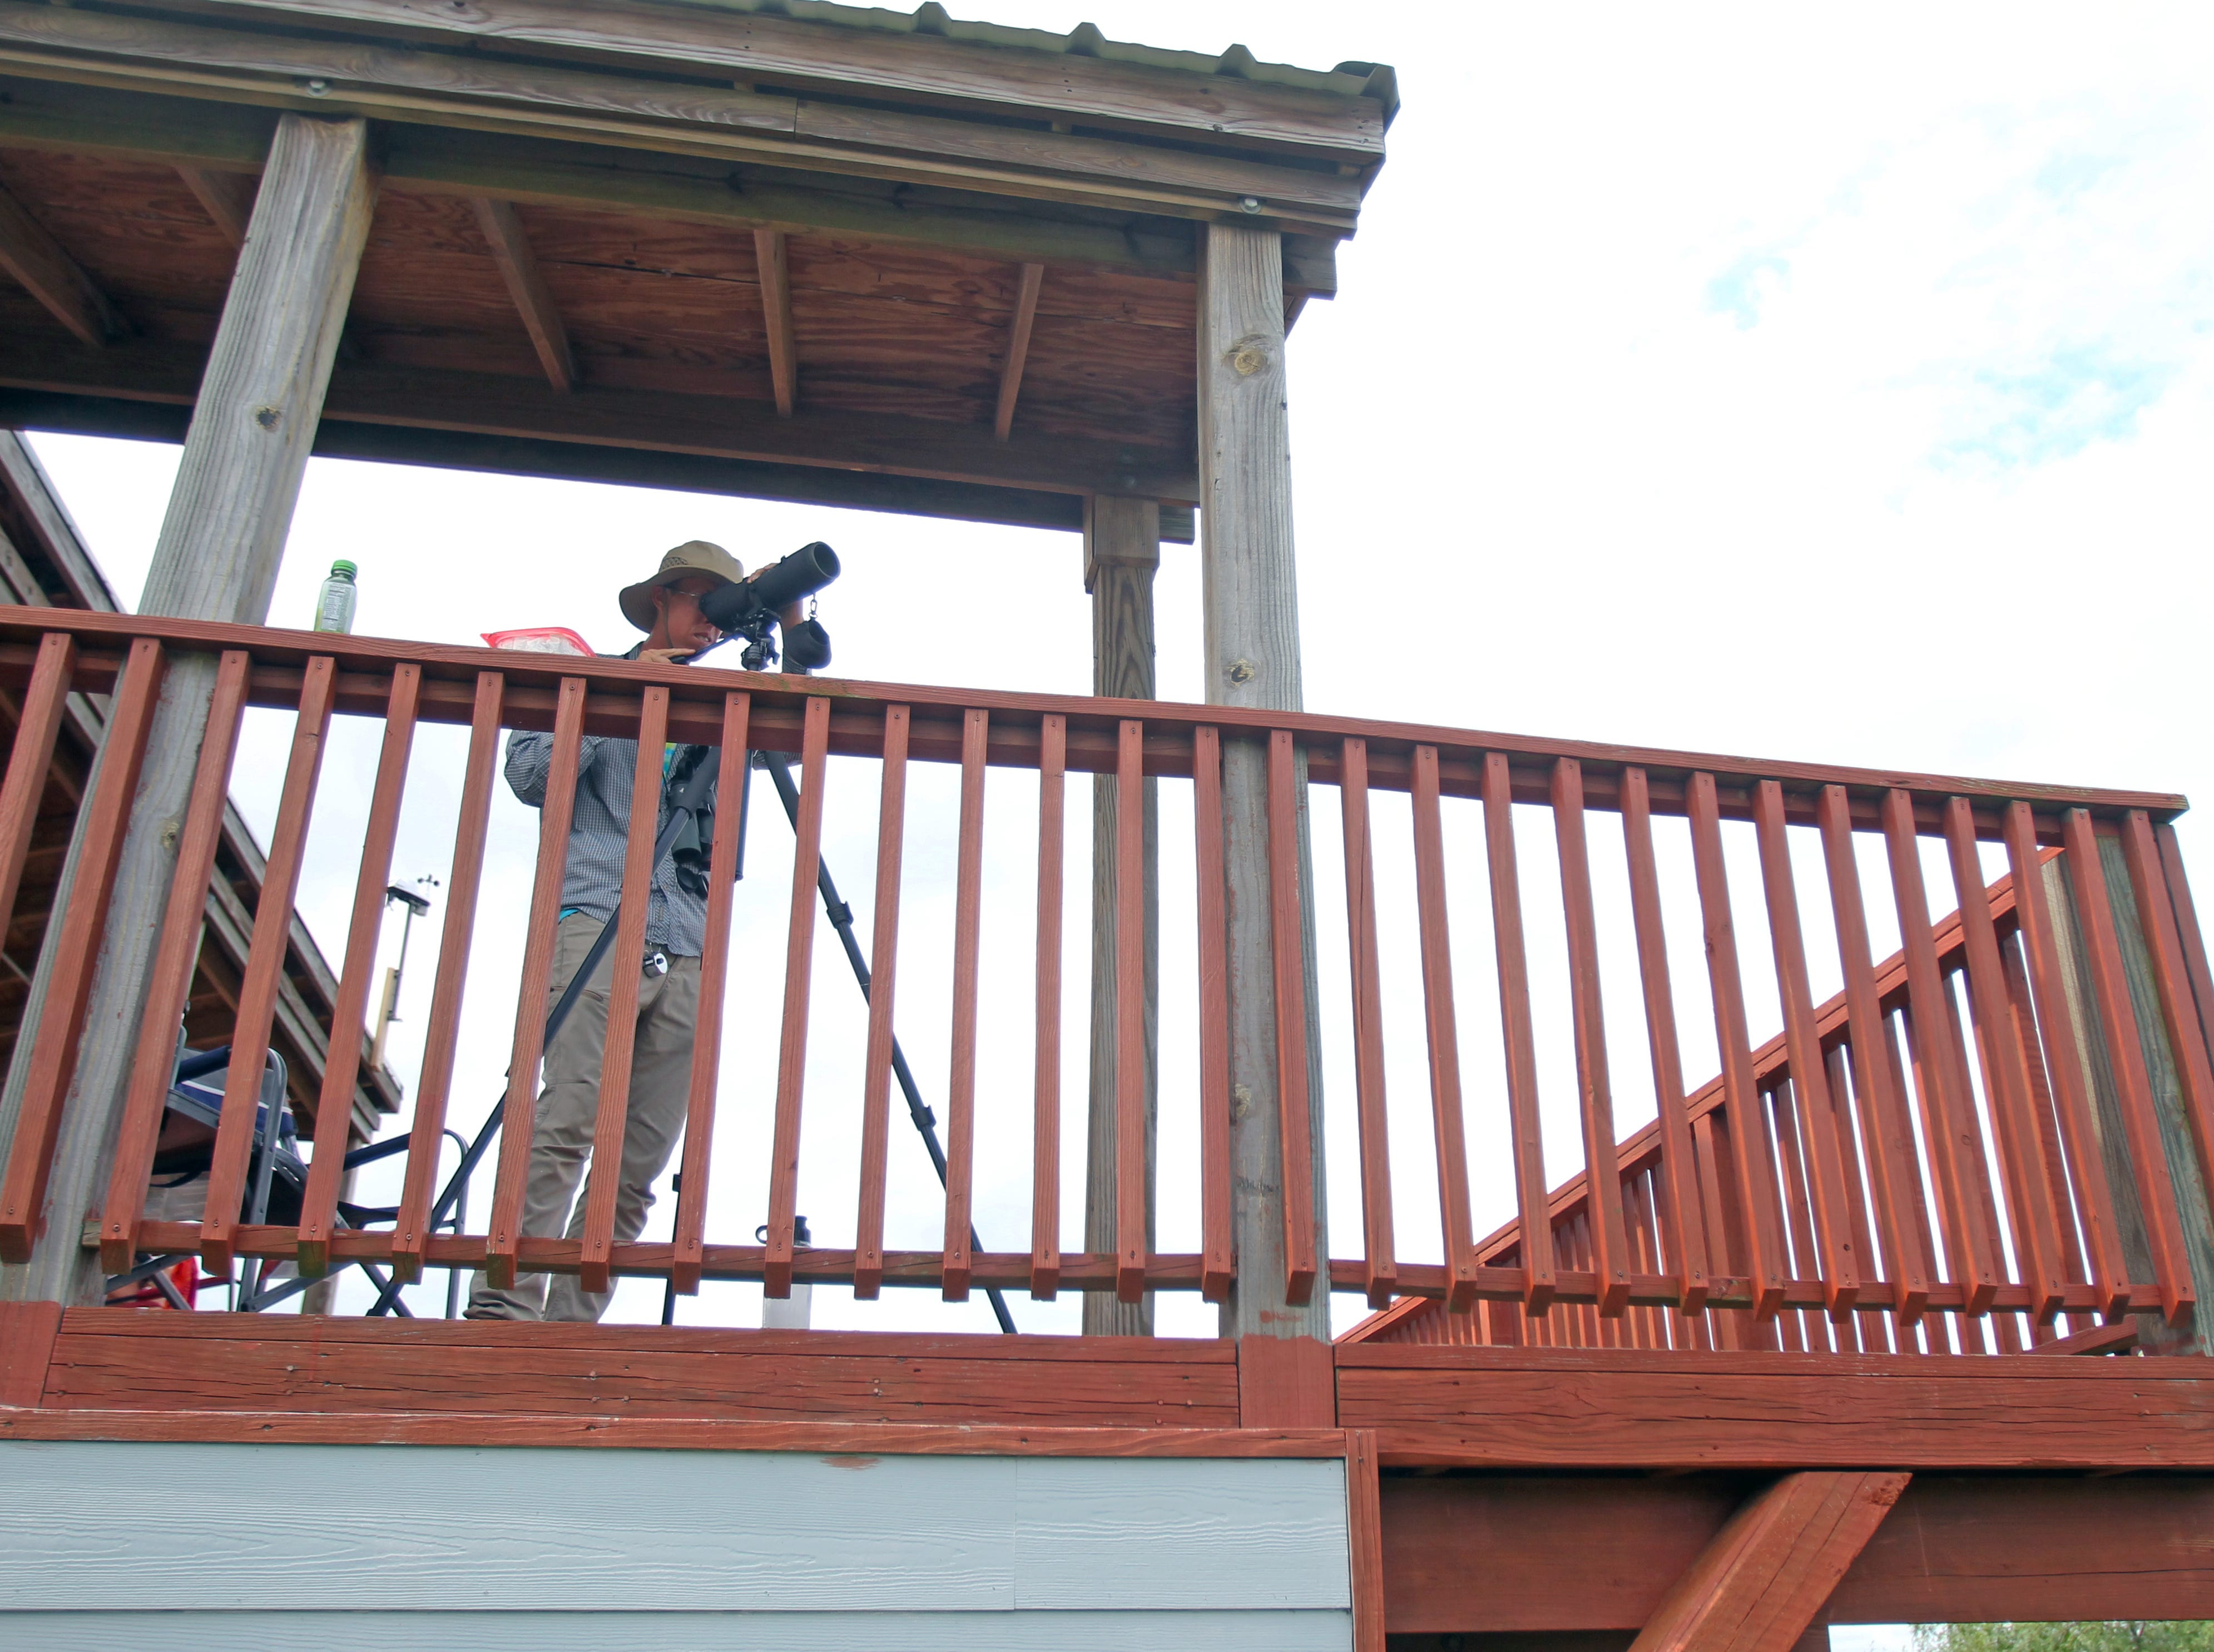 Volunteers come out each day from August through mid November to count and identify migrating hawks.